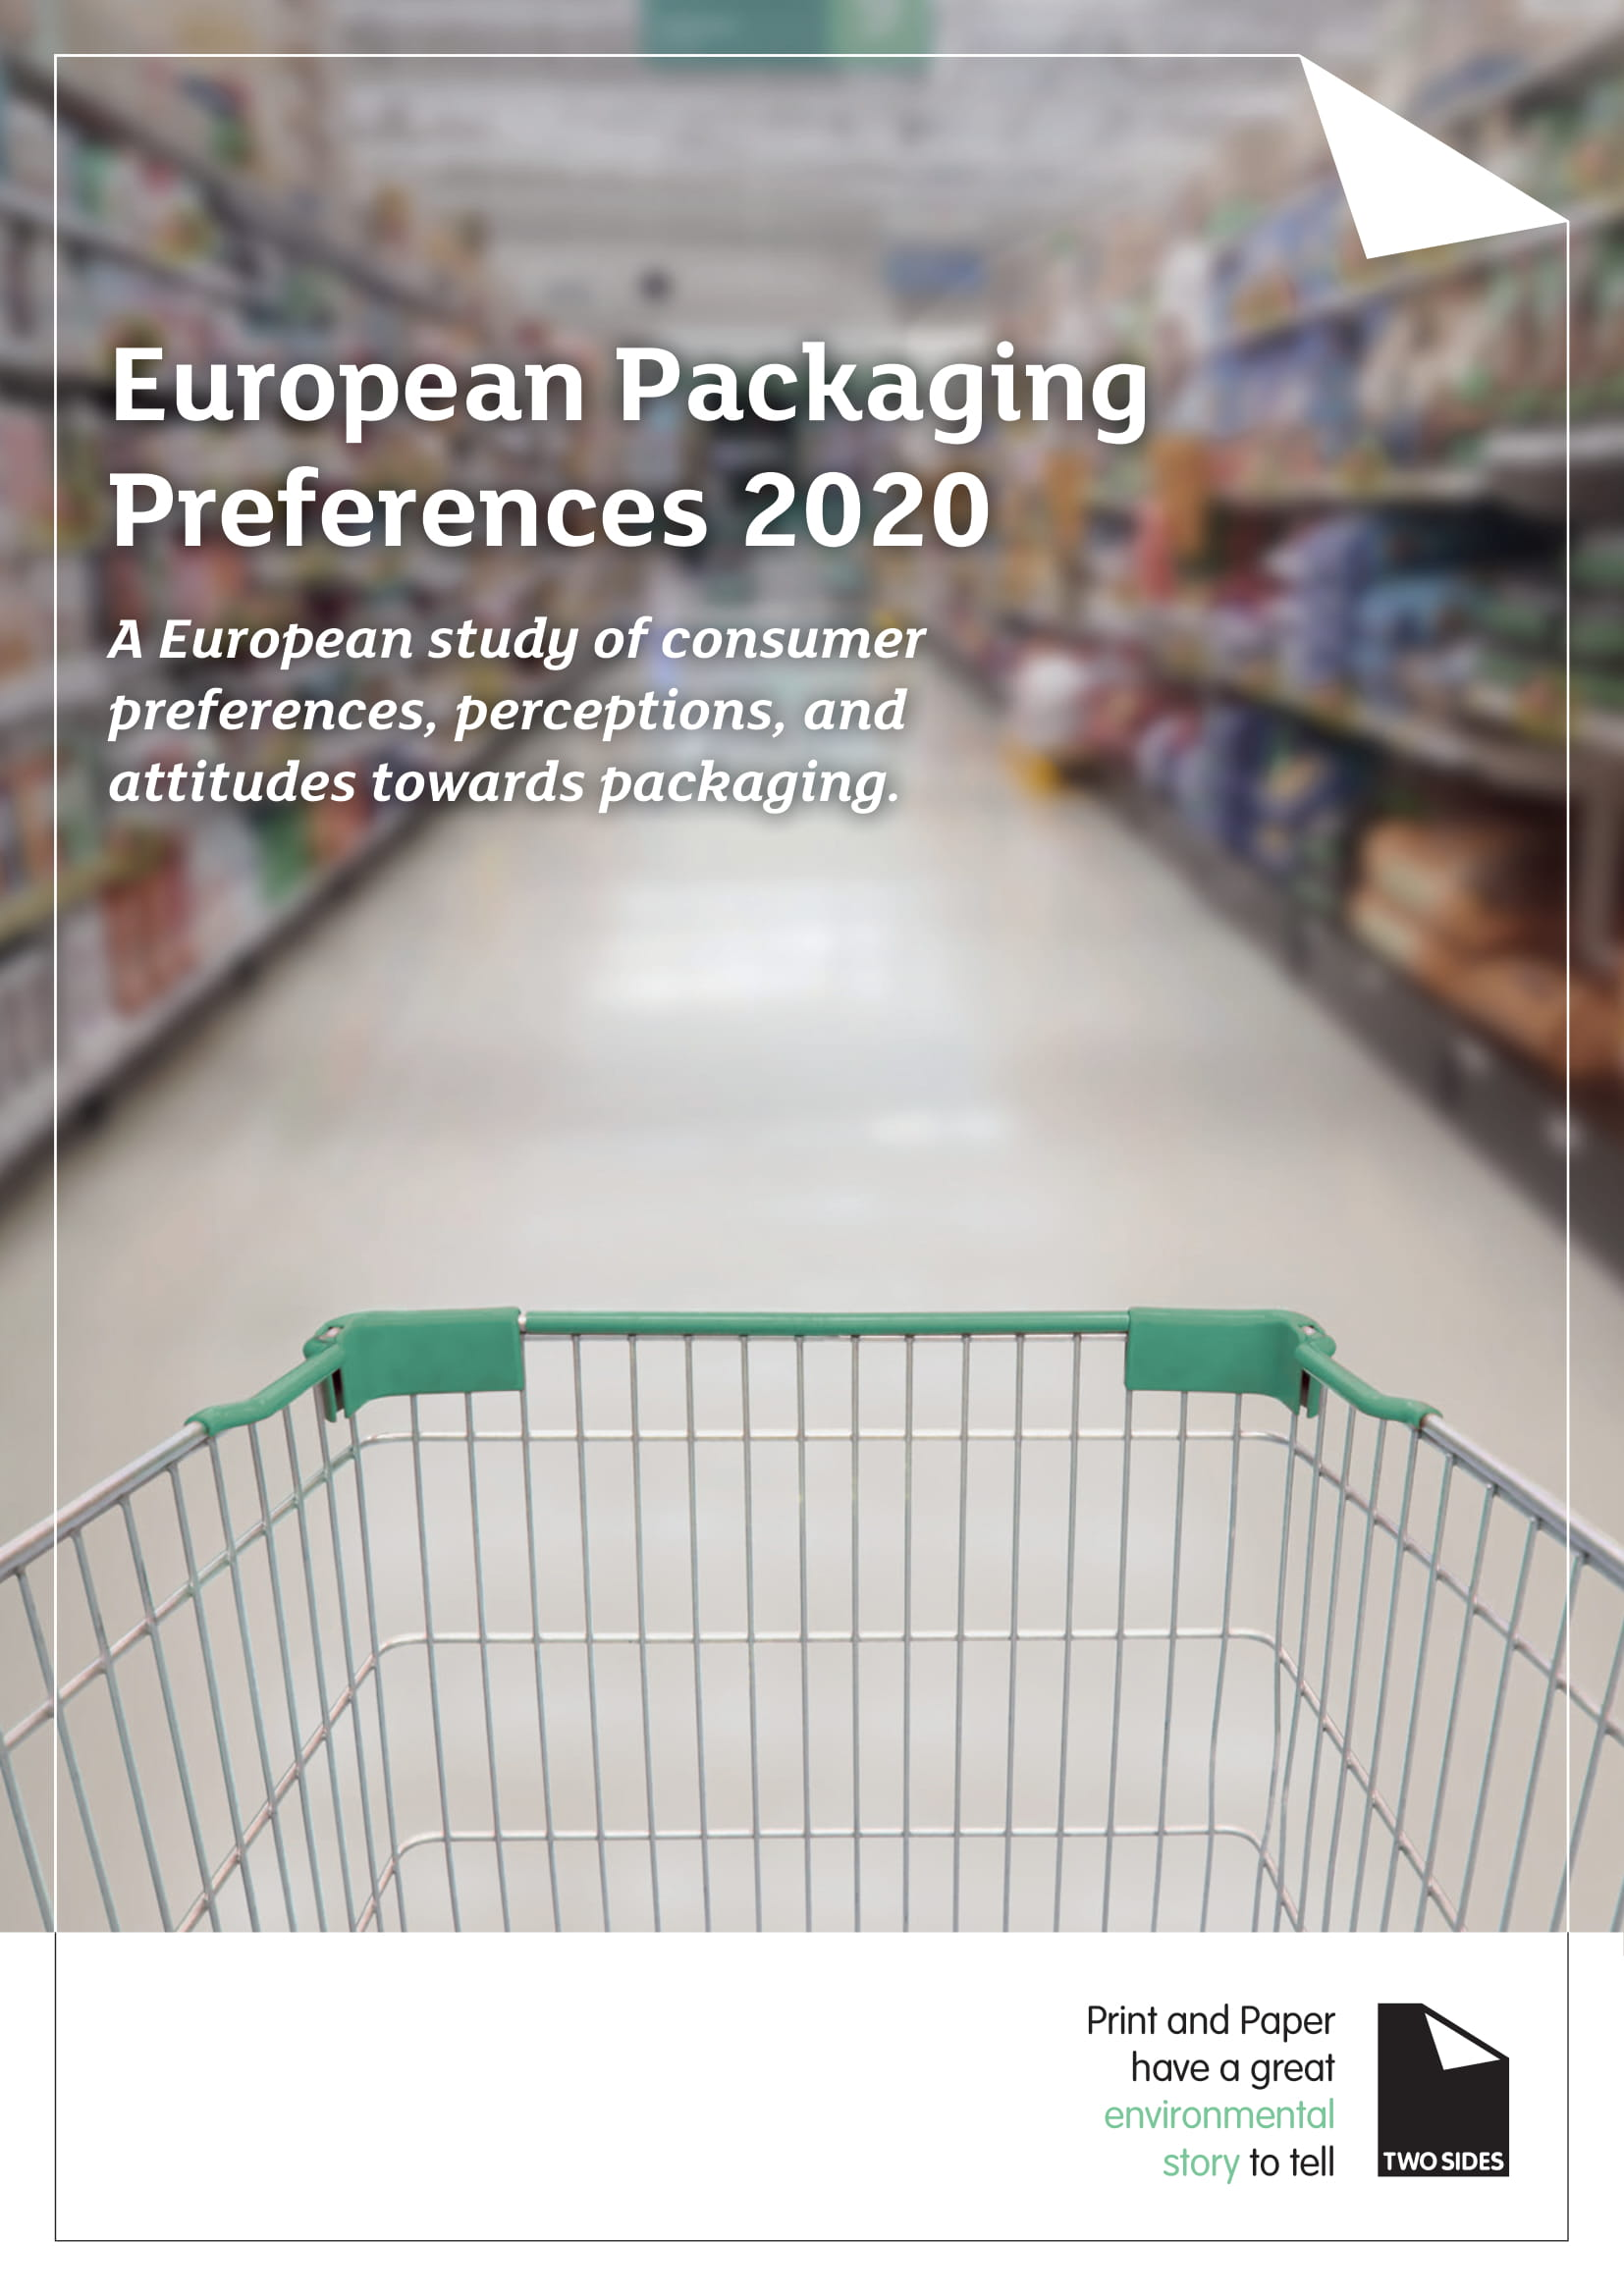 European Packaging Preferences Survey